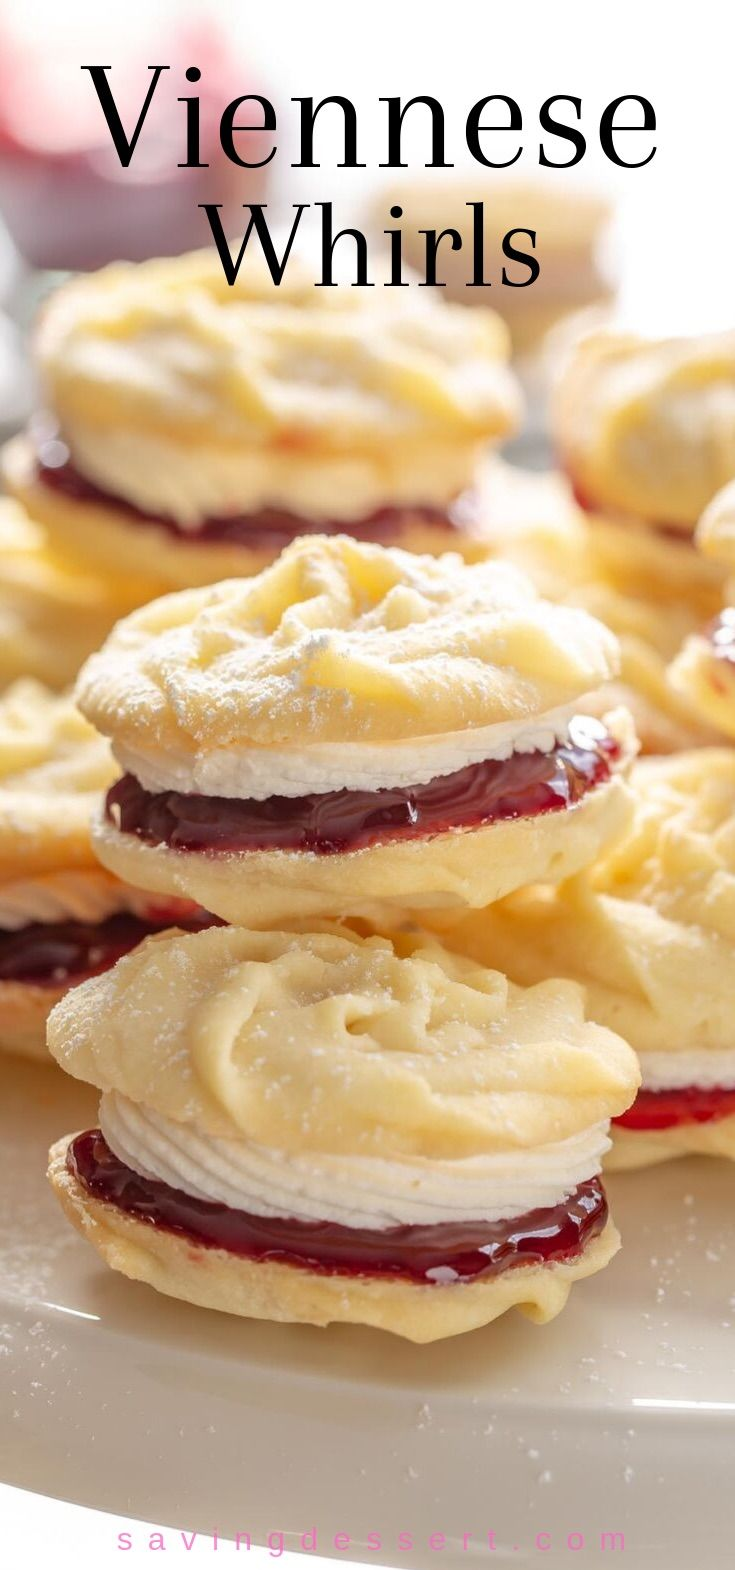 Mary Berry's Viennese Whirls - Saving Room for Dessert